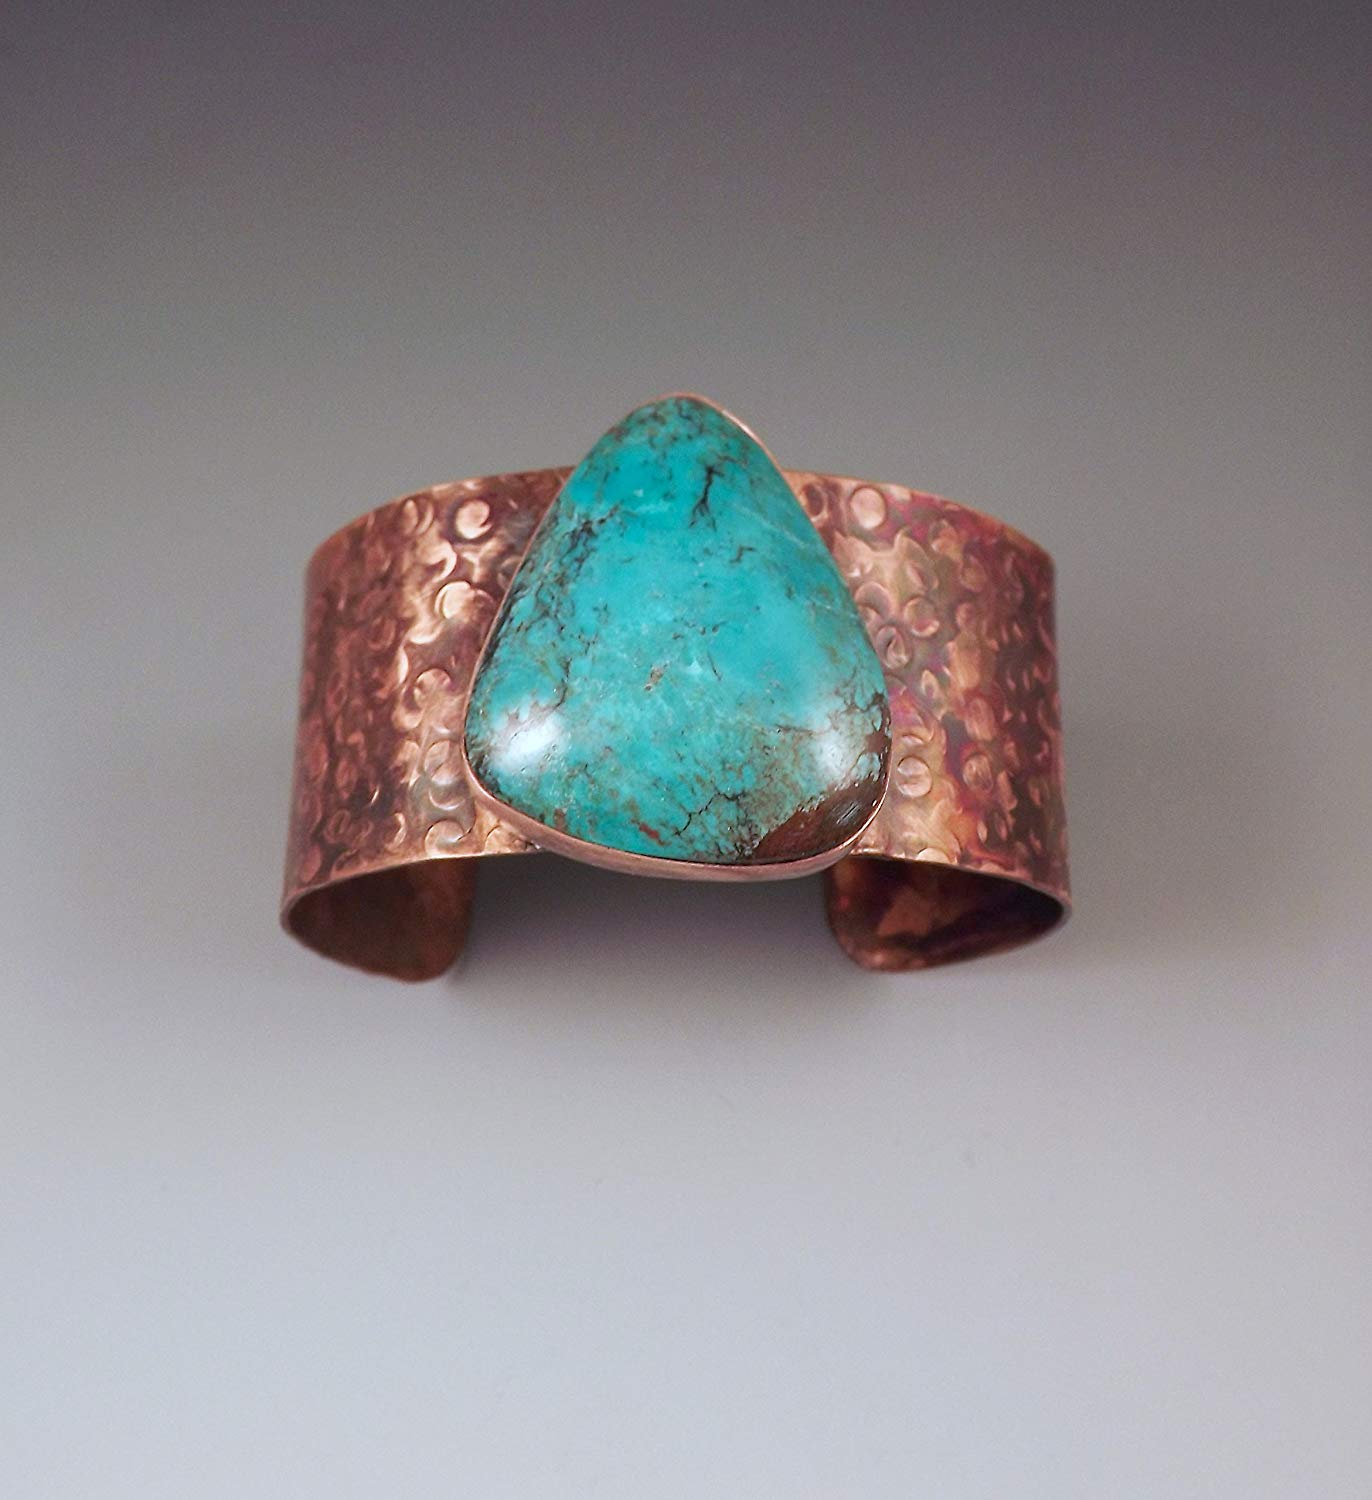 Turquoise Cuff- Hammered Copper- Tribal- Rustic- Earthy- Boho- Turquoise Copper Cuff Bracelet by RedPaw